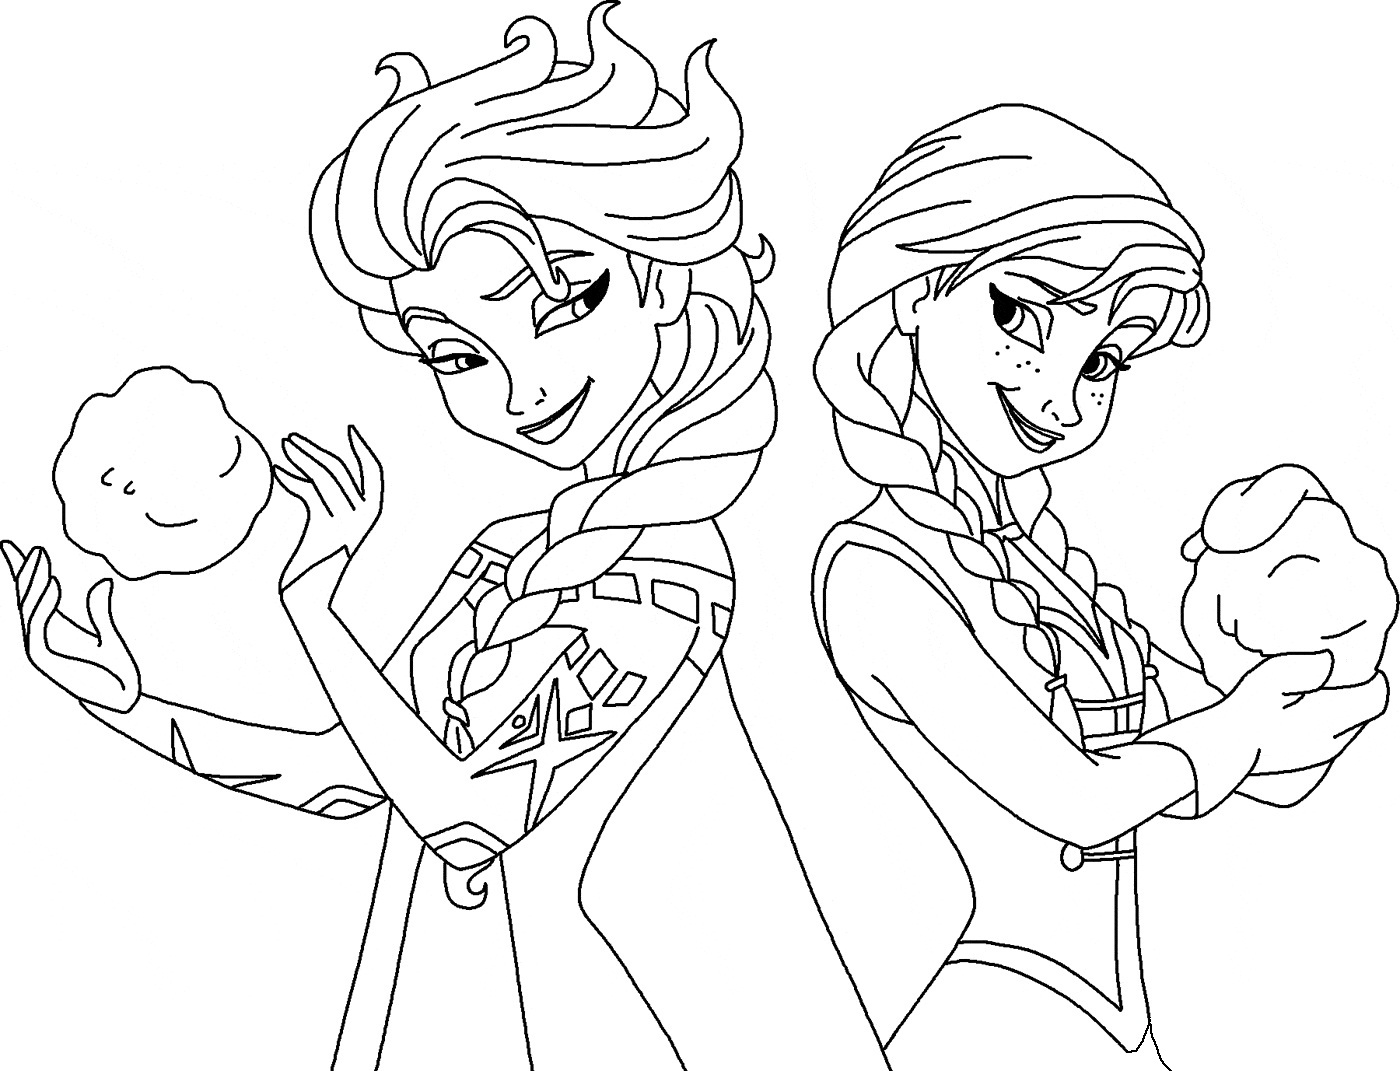 frozen elsa and anna coloring pages frozen coloring pages elsa and anna coloring pages images and frozen coloring elsa pages anna